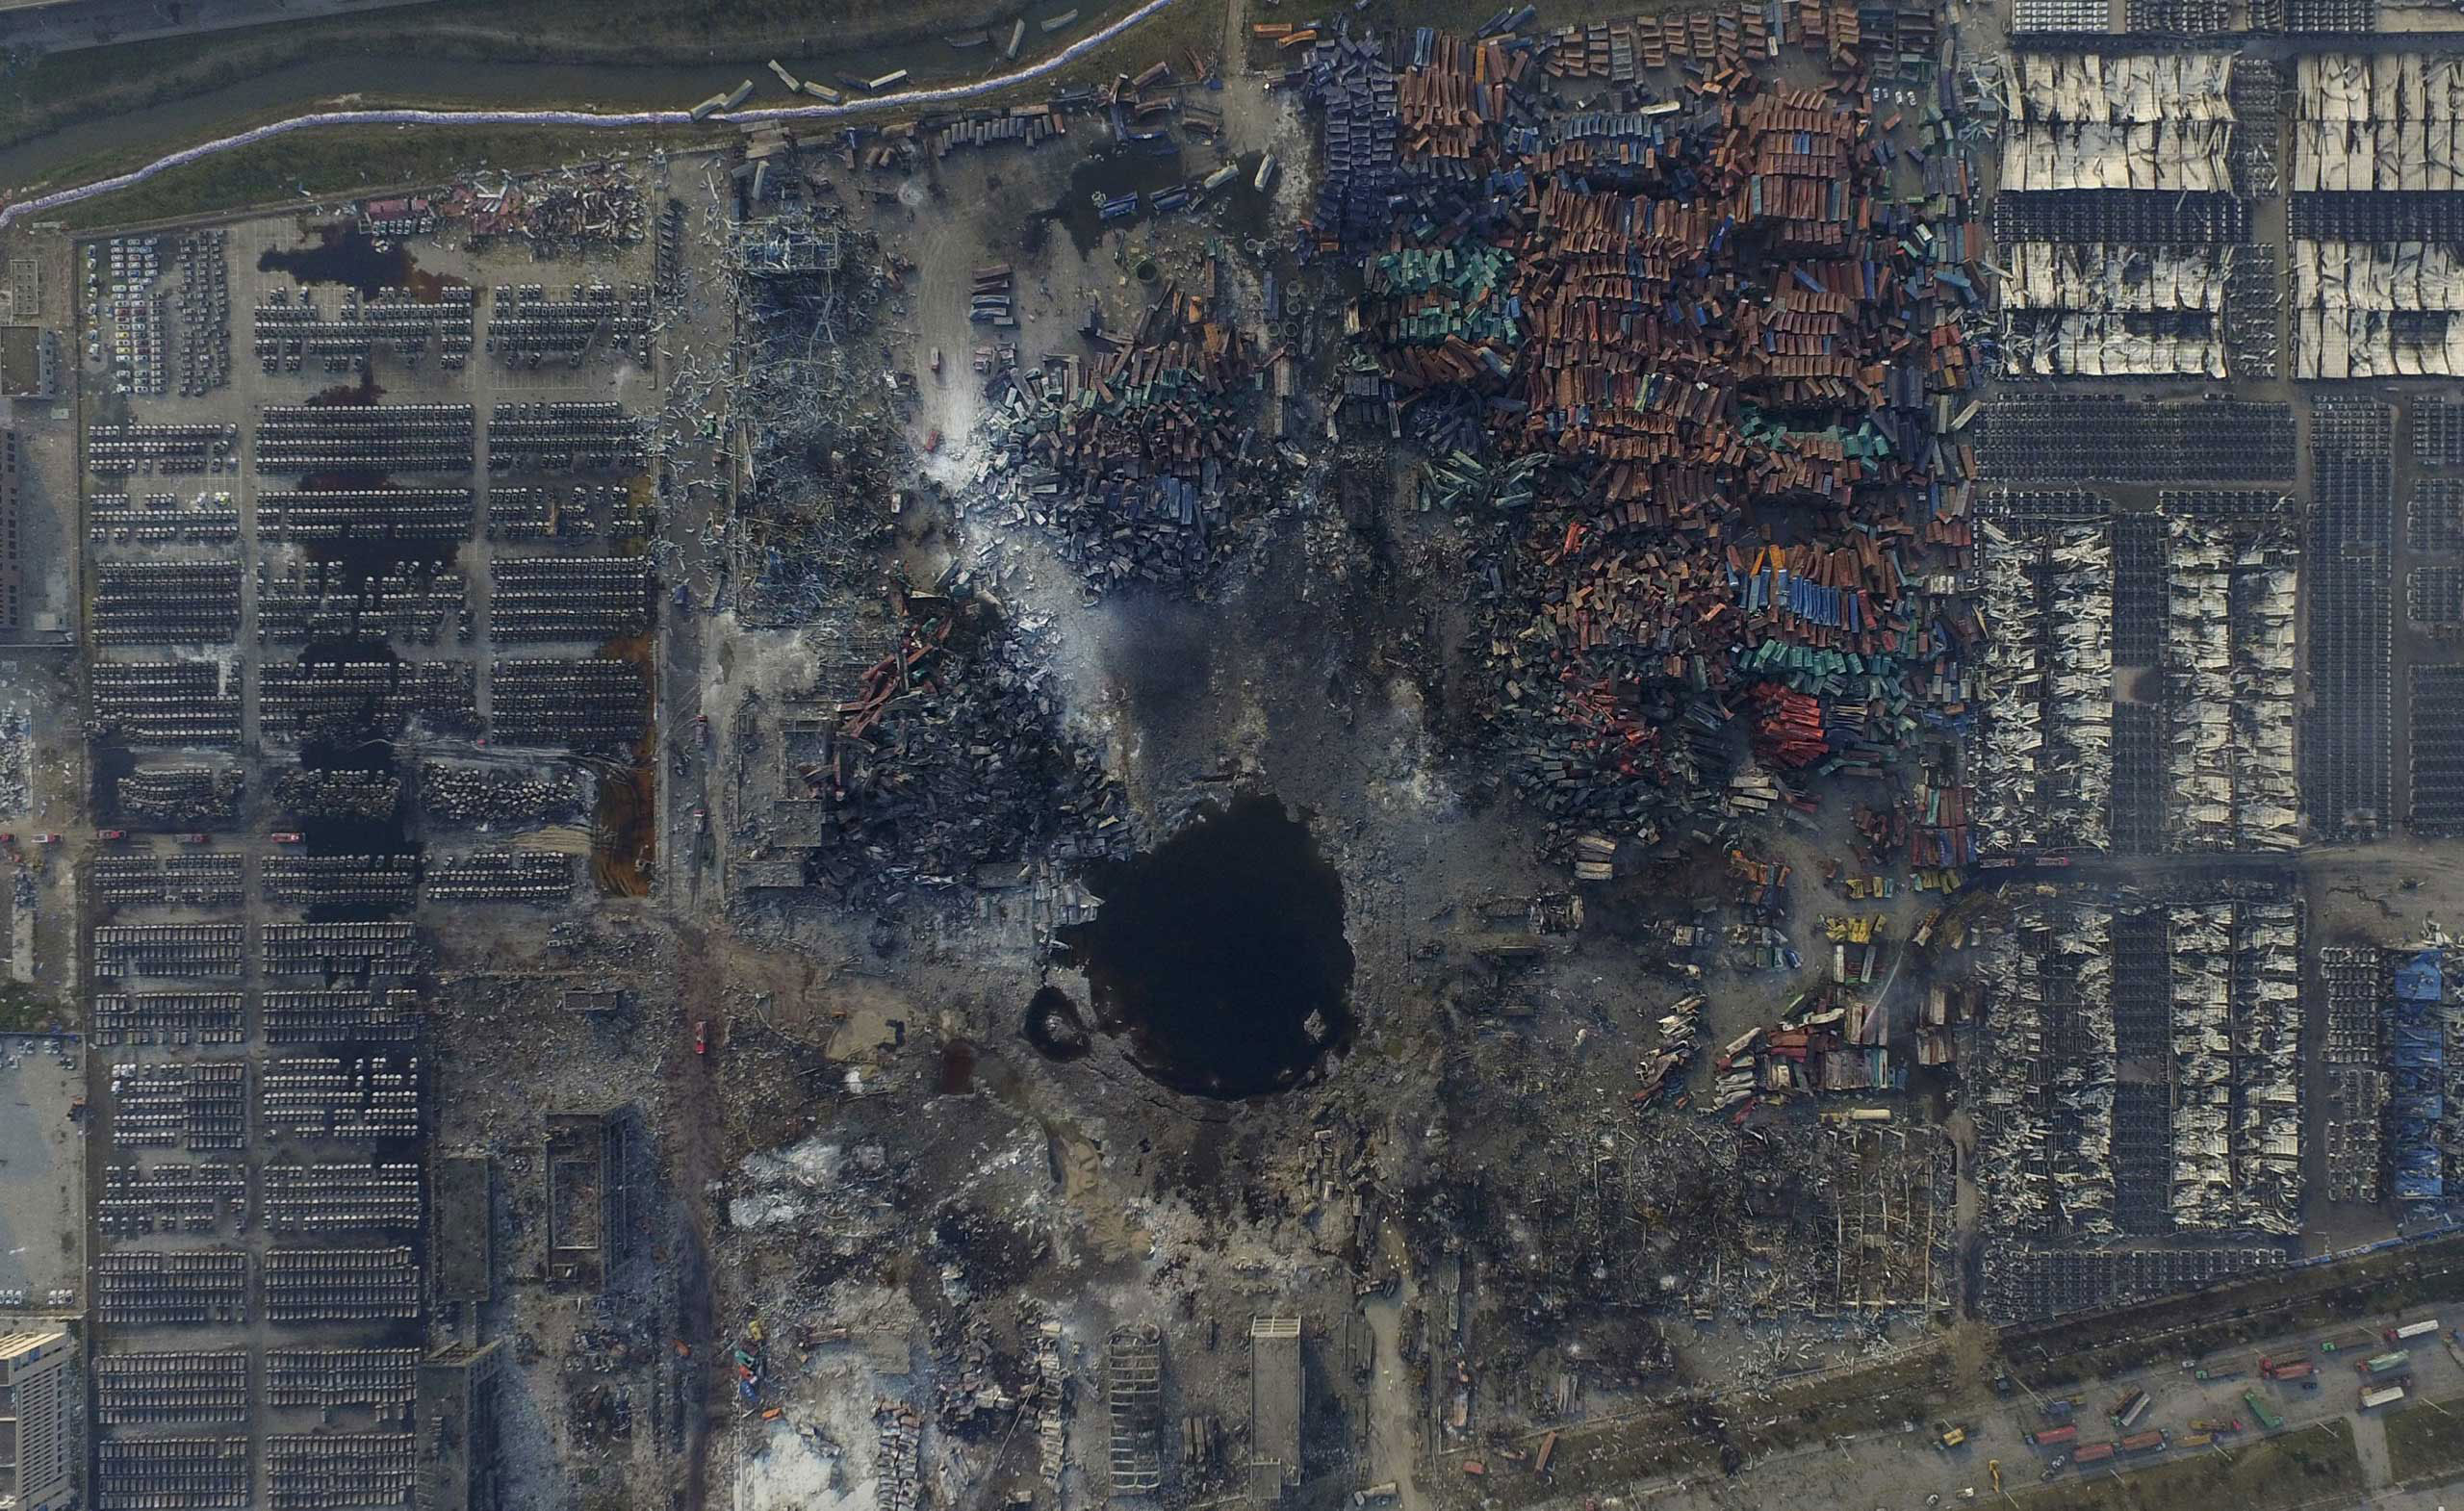 An aerial picture of the site of explosions at the Binhai new district, Tianjin, China. The blasts devastated a large industrial site and nearby residential areas, forcing the evacuation of thousands of people after toxic chemicals were detected in the air. Aug. 16, 2015.